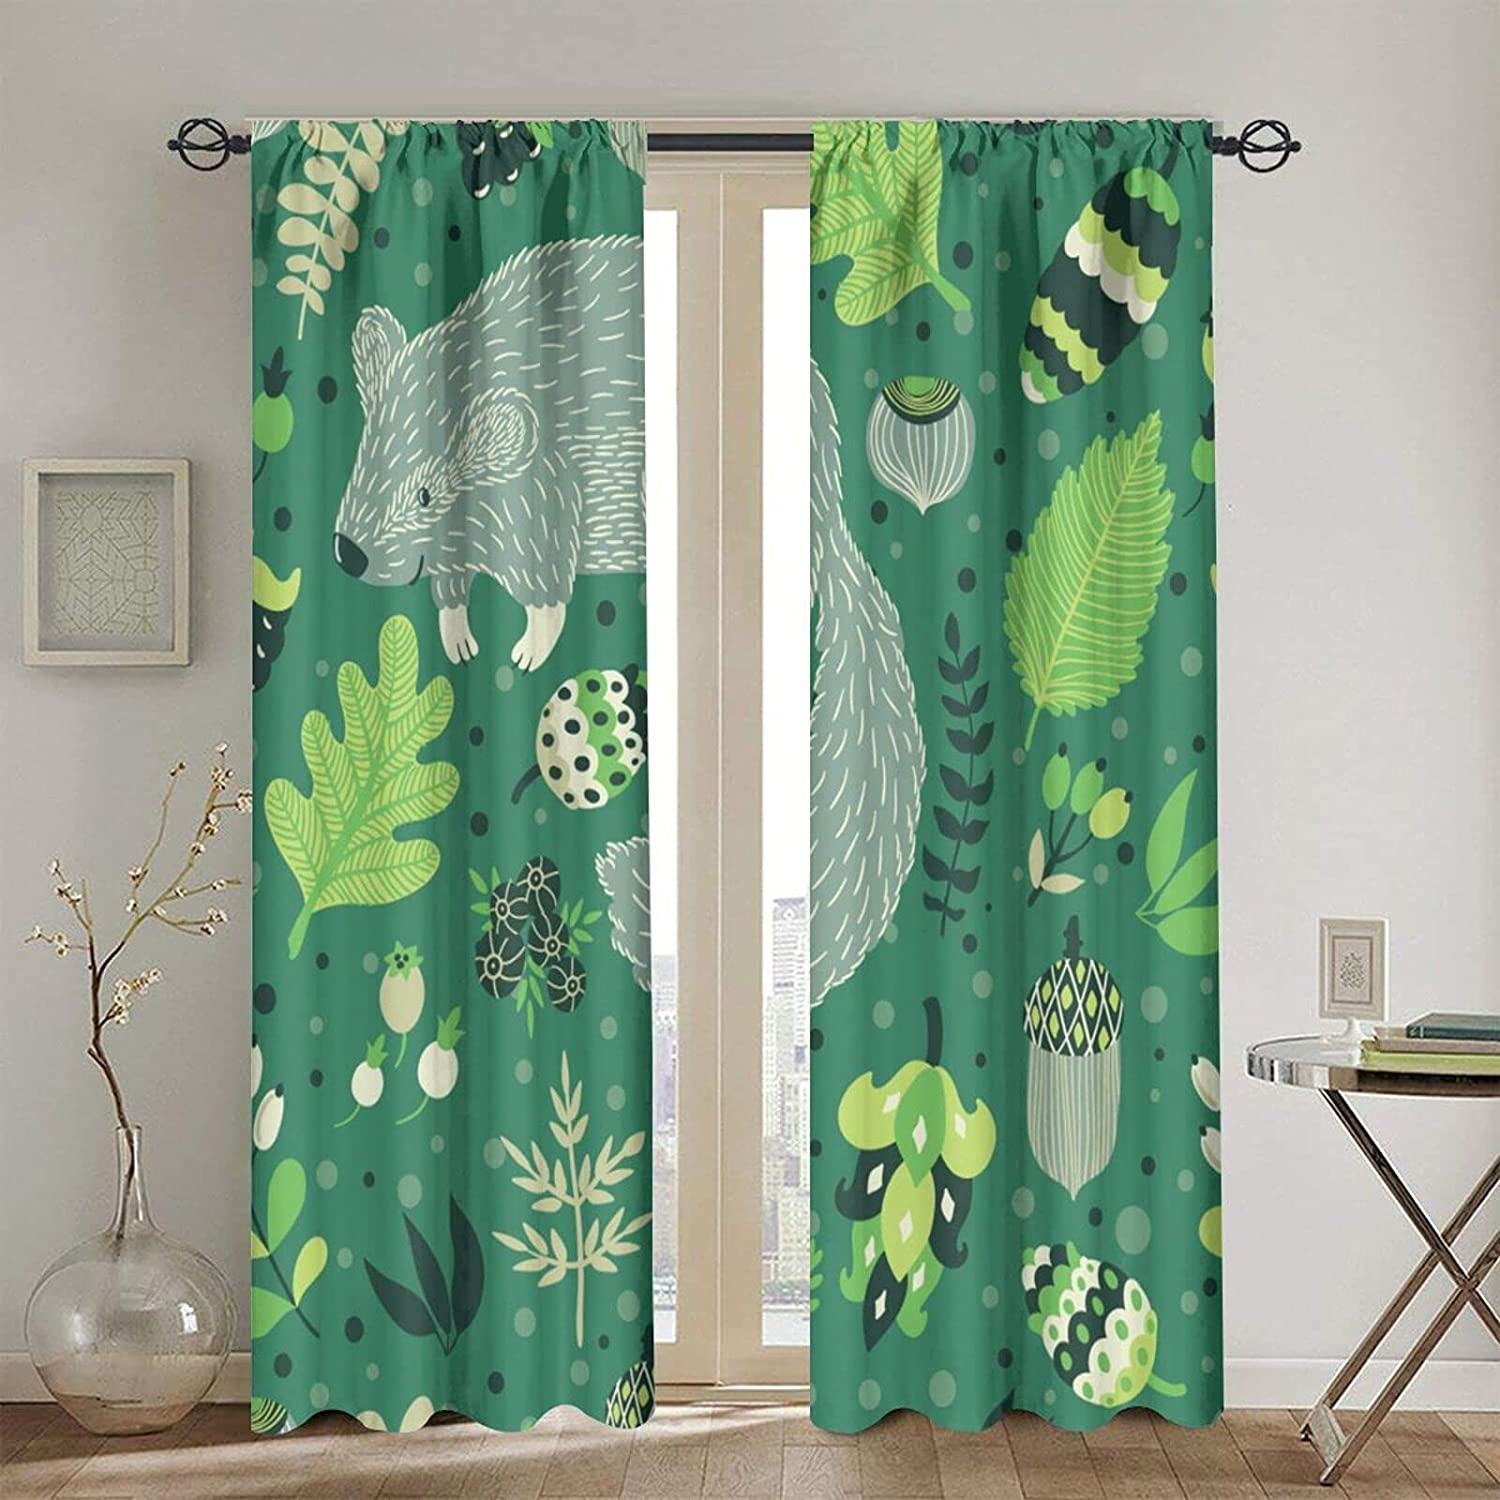 Rod Pocket Blackout Fixed price for sale Curtains Thermal Curtain Ve Window Insulated outlet